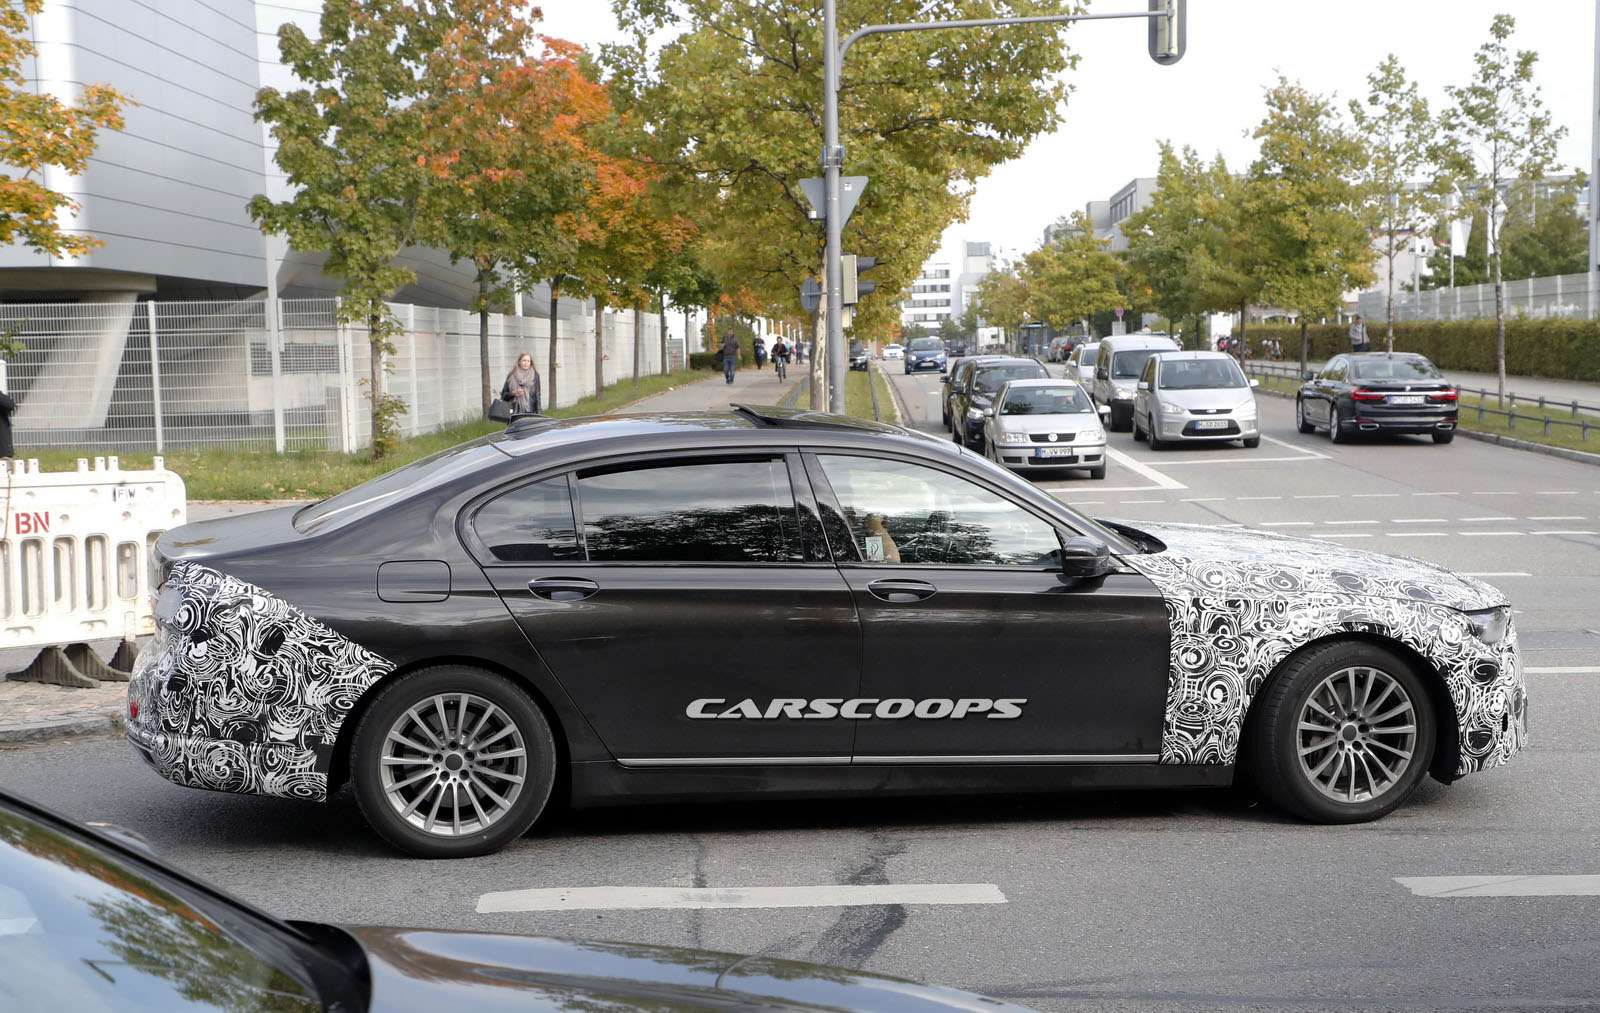 7 Facelifted 2019 Bmw 7 Series To Adopt More Dynamic Design